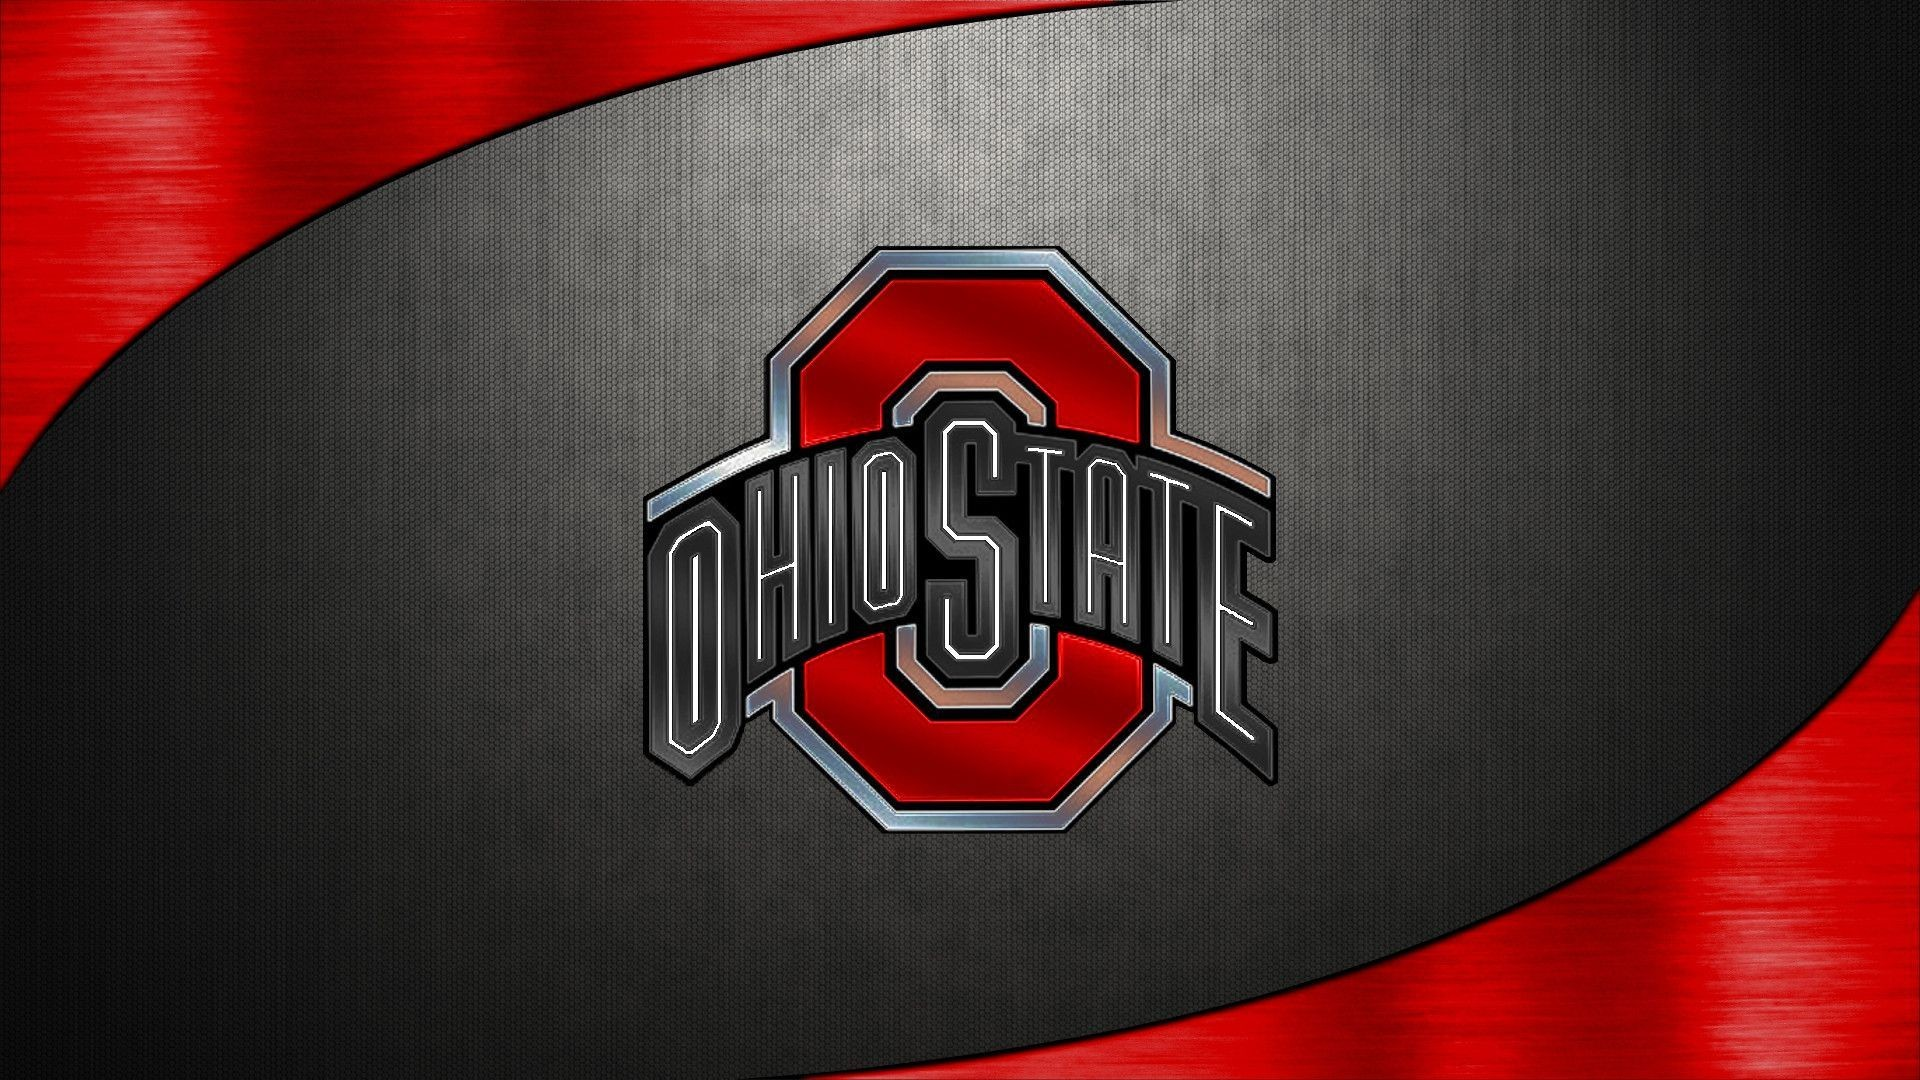 1920x1080 Ohio State Buckeyes Football Wallpapers